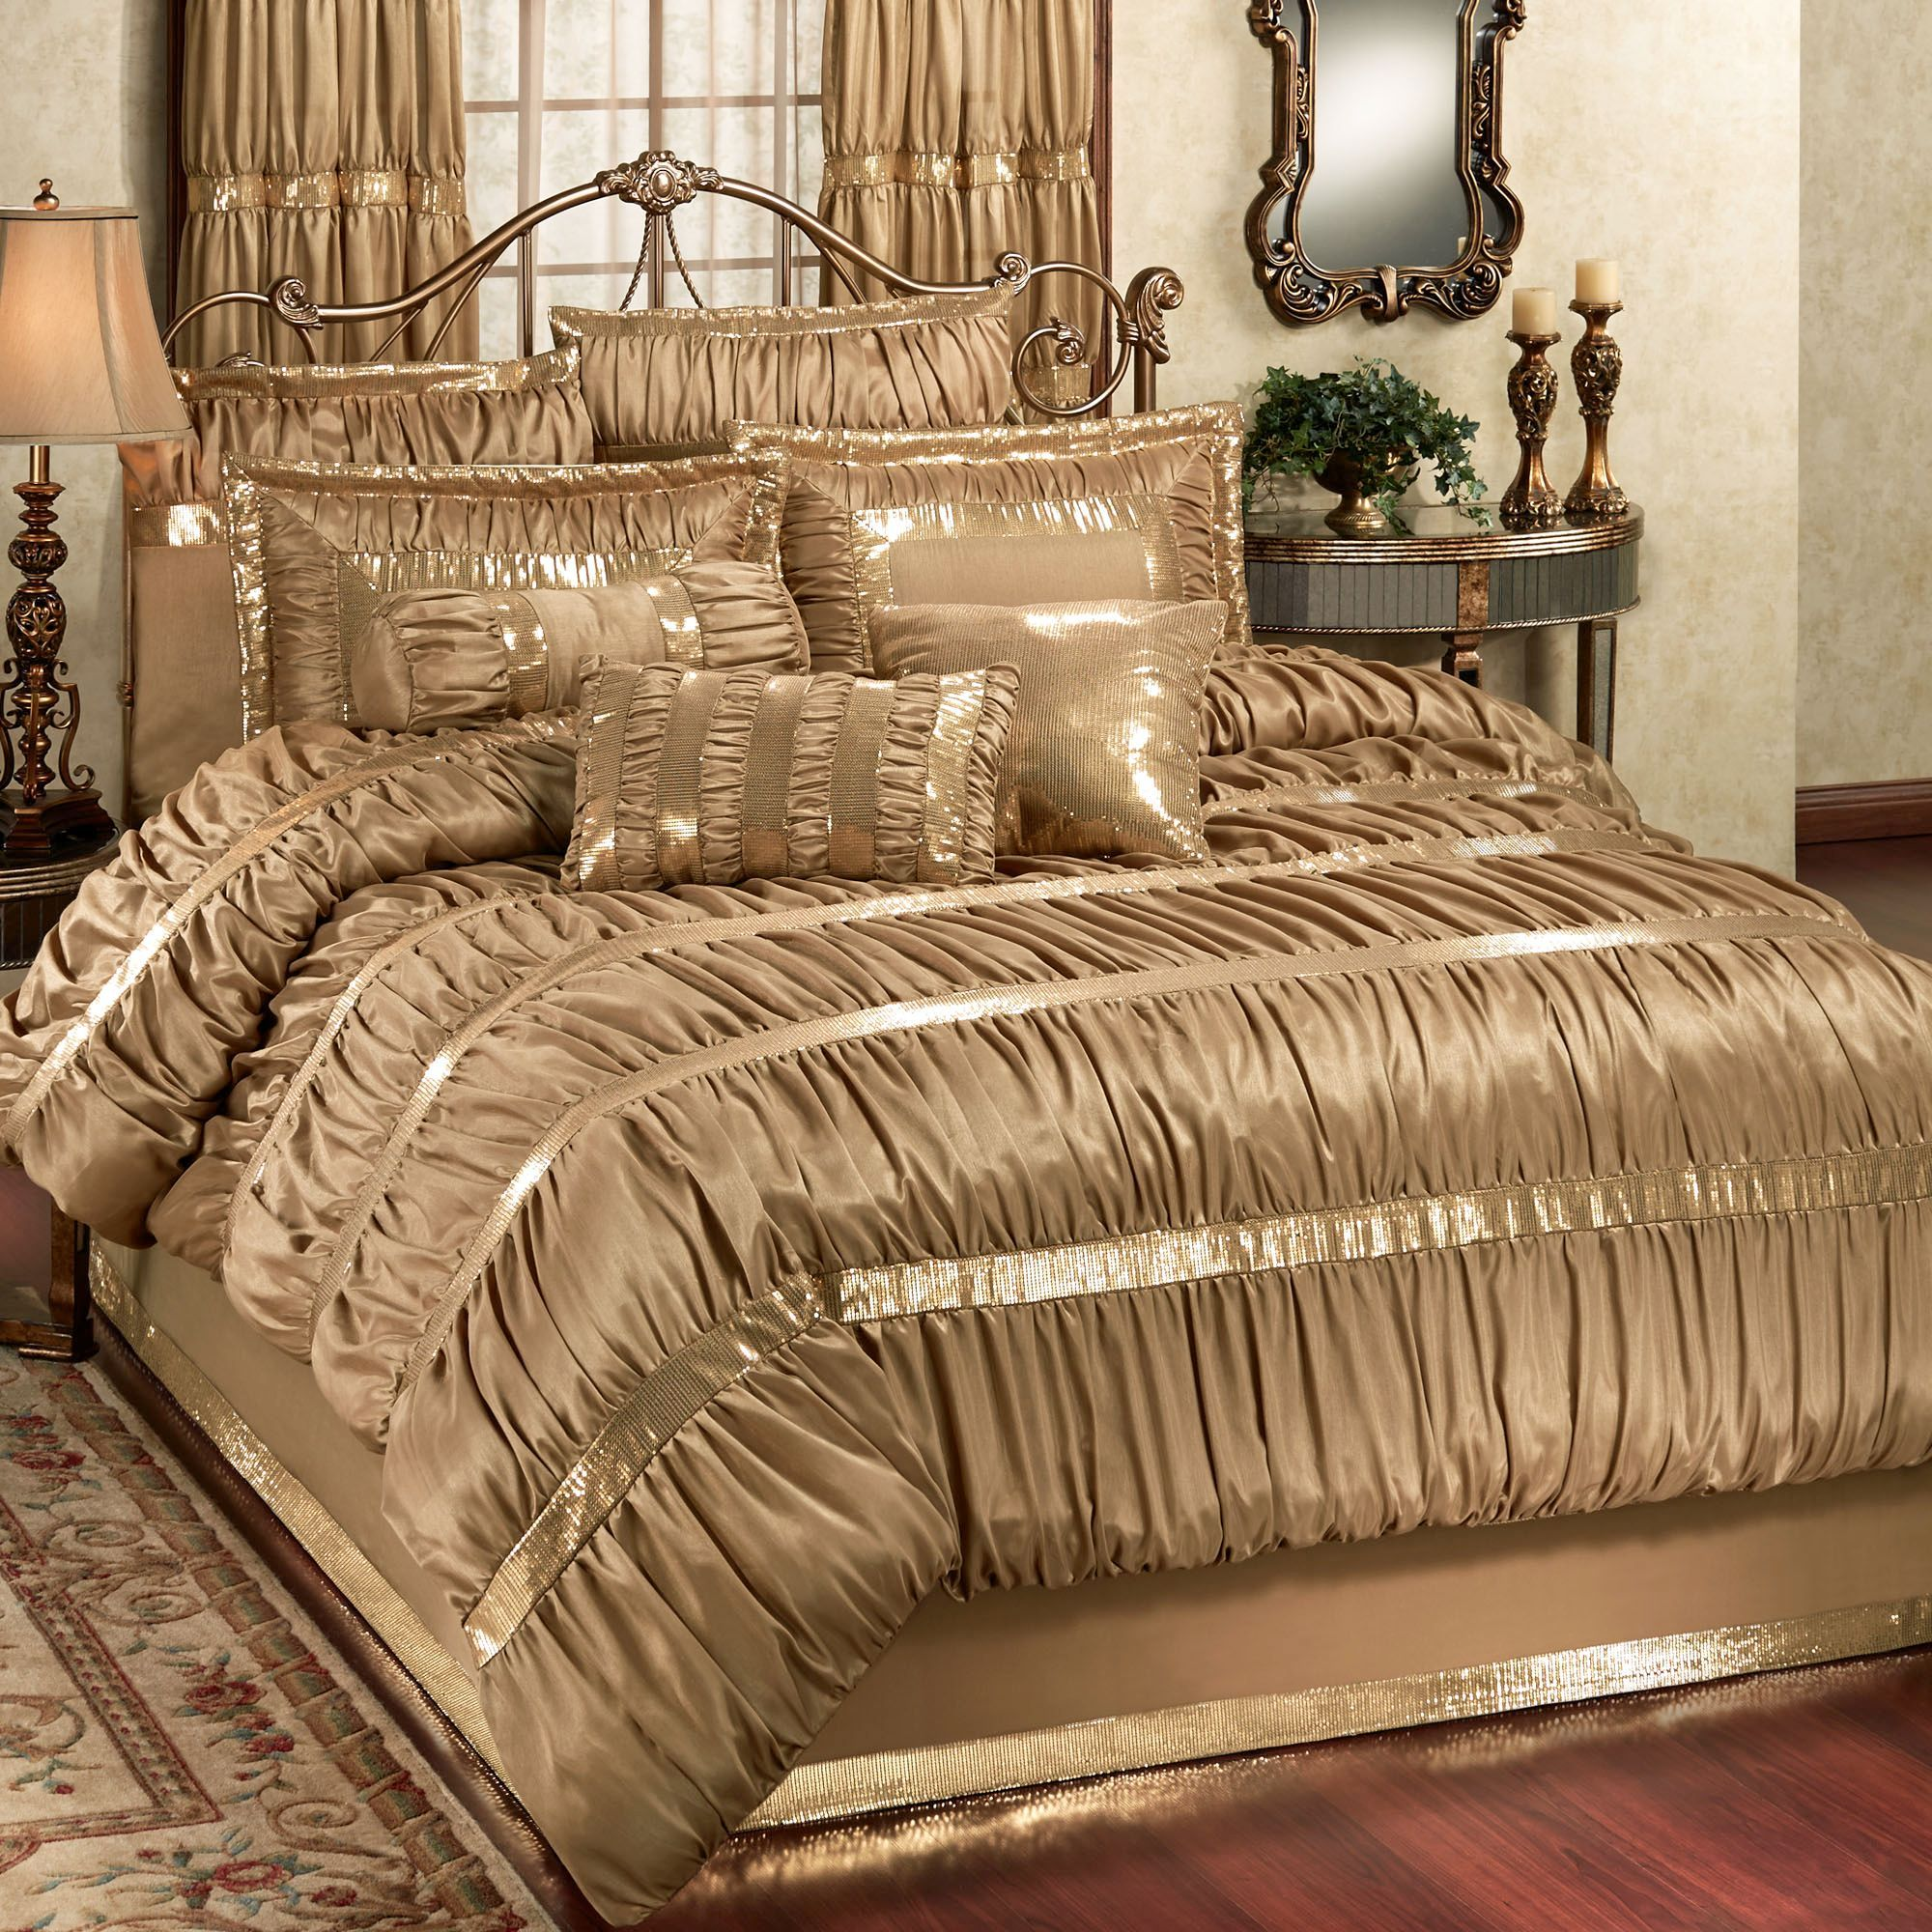 Splendor Shirred Faux Silk Dark Gold Comforter Bedding  ec9f0d96b